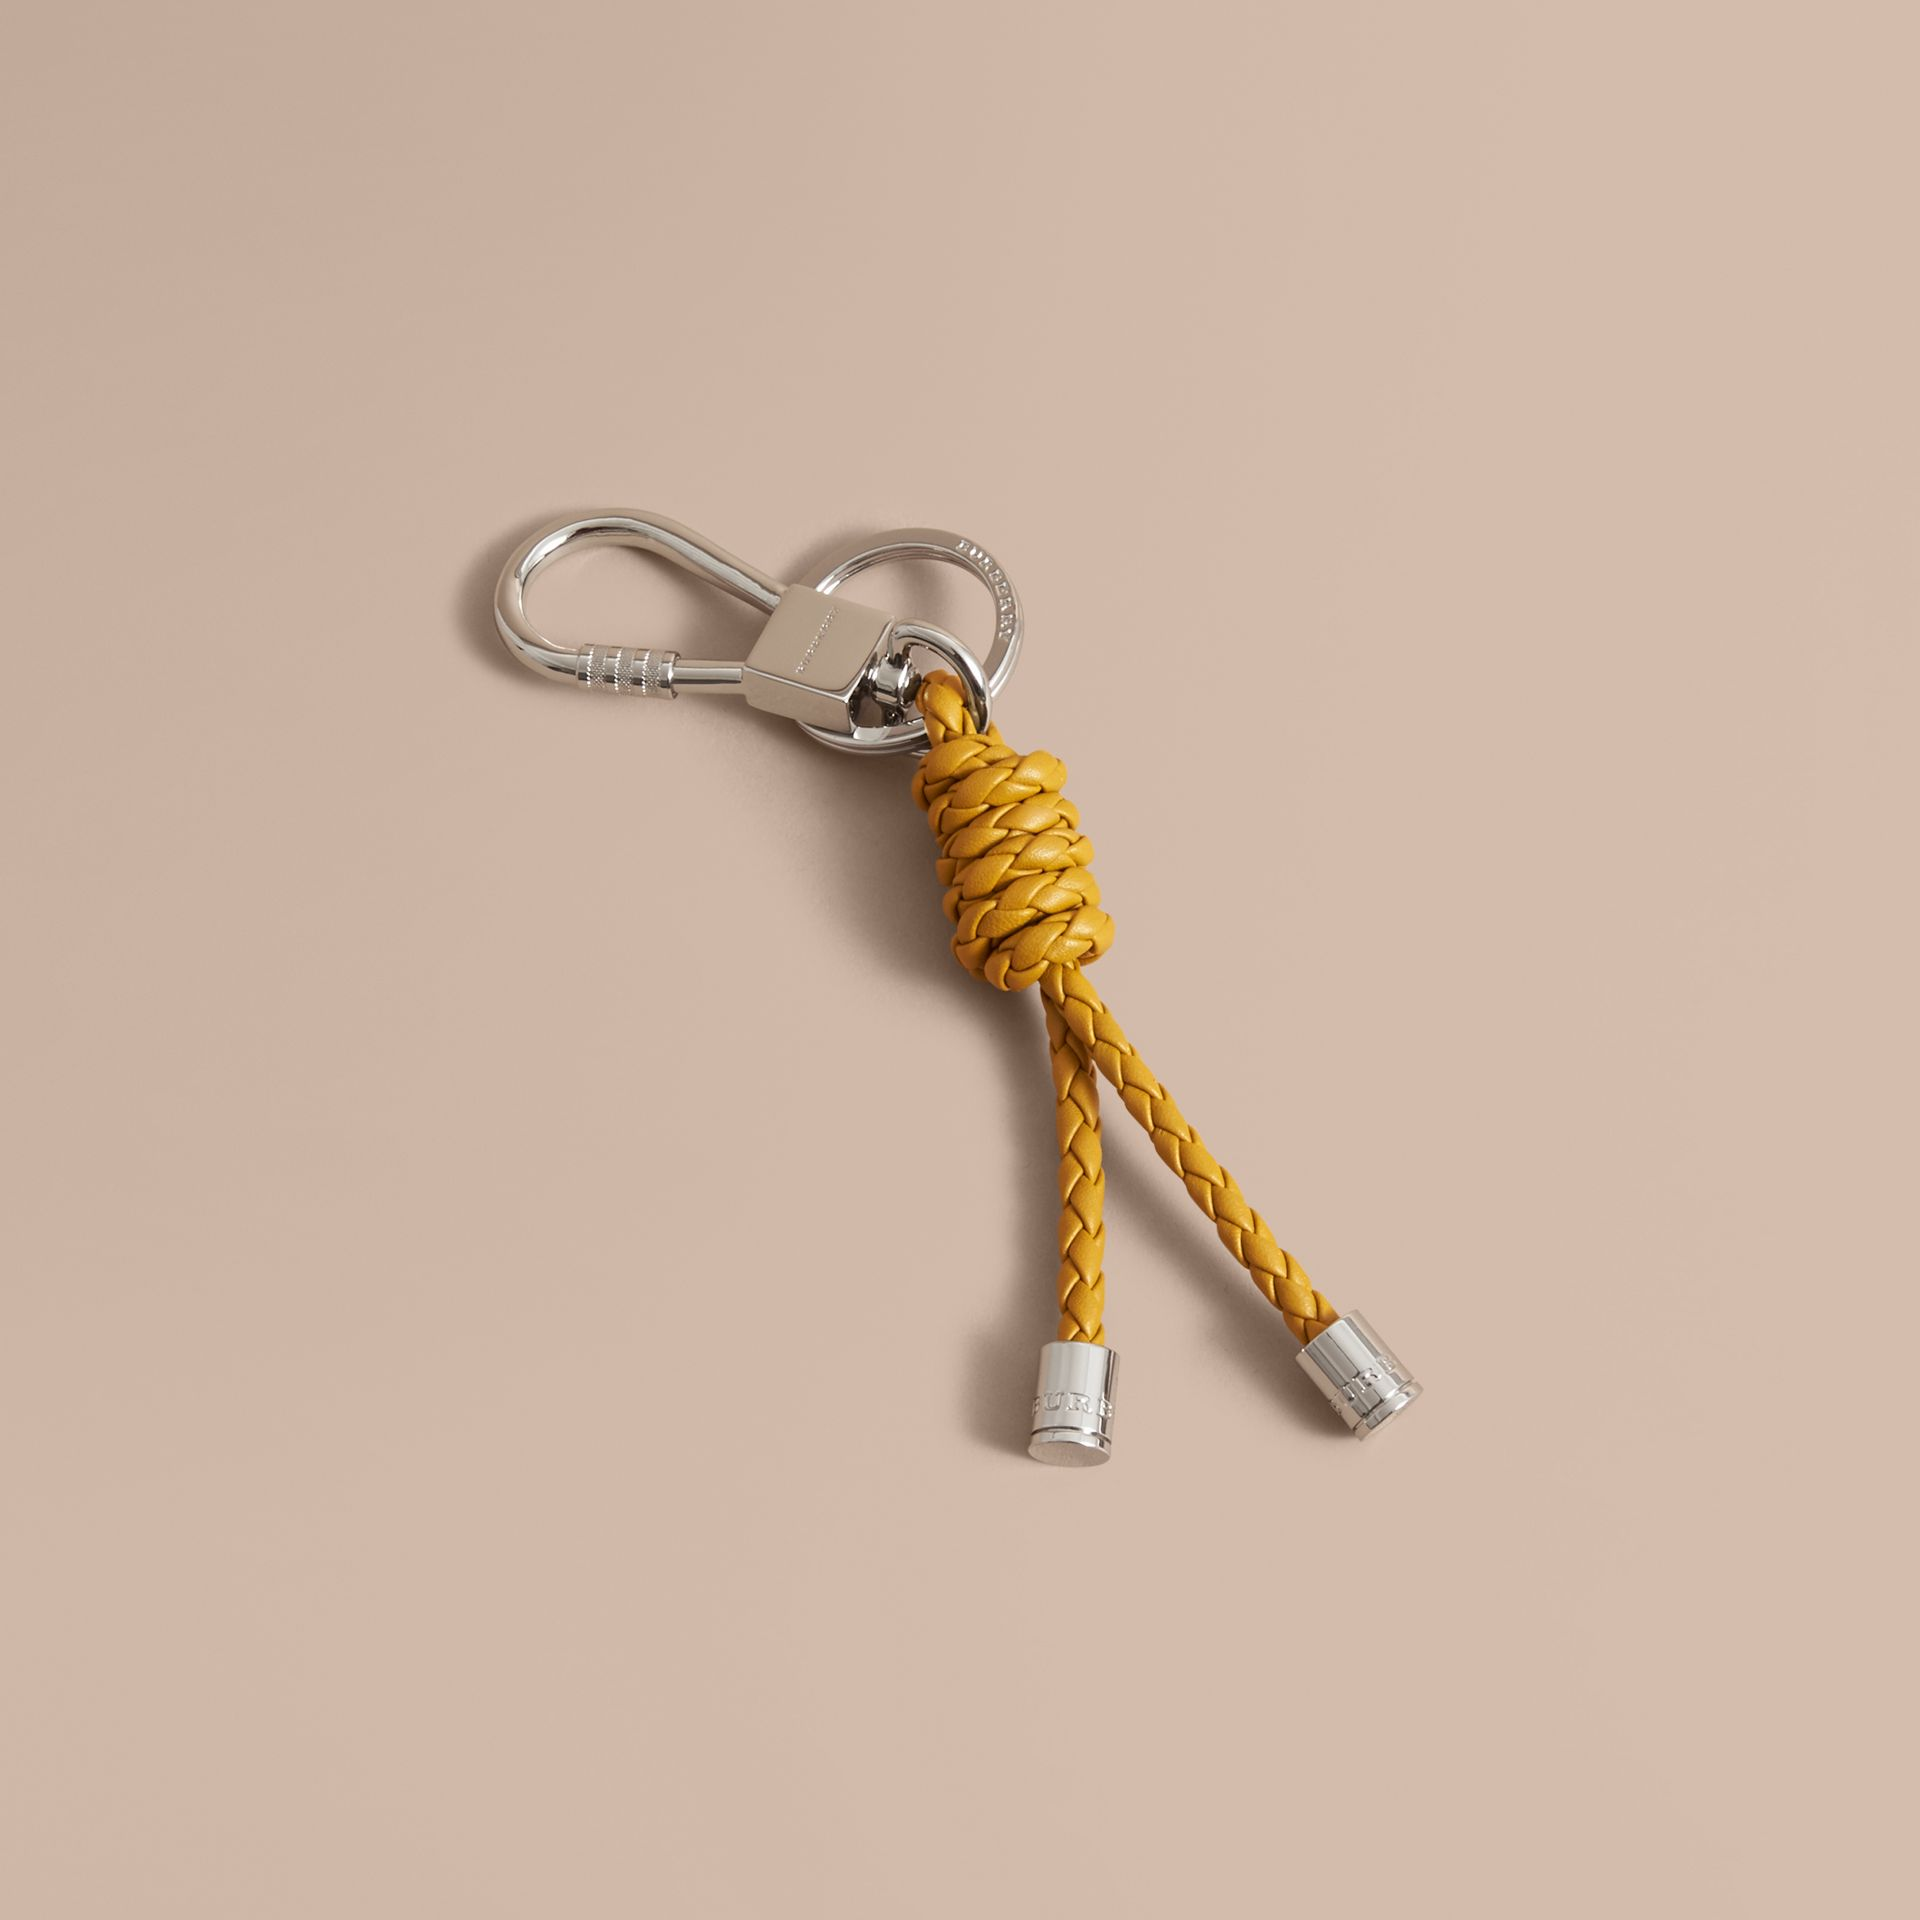 Braided Leather Knot Key Ring in Bright Citrus - Men | Burberry Canada - gallery image 1